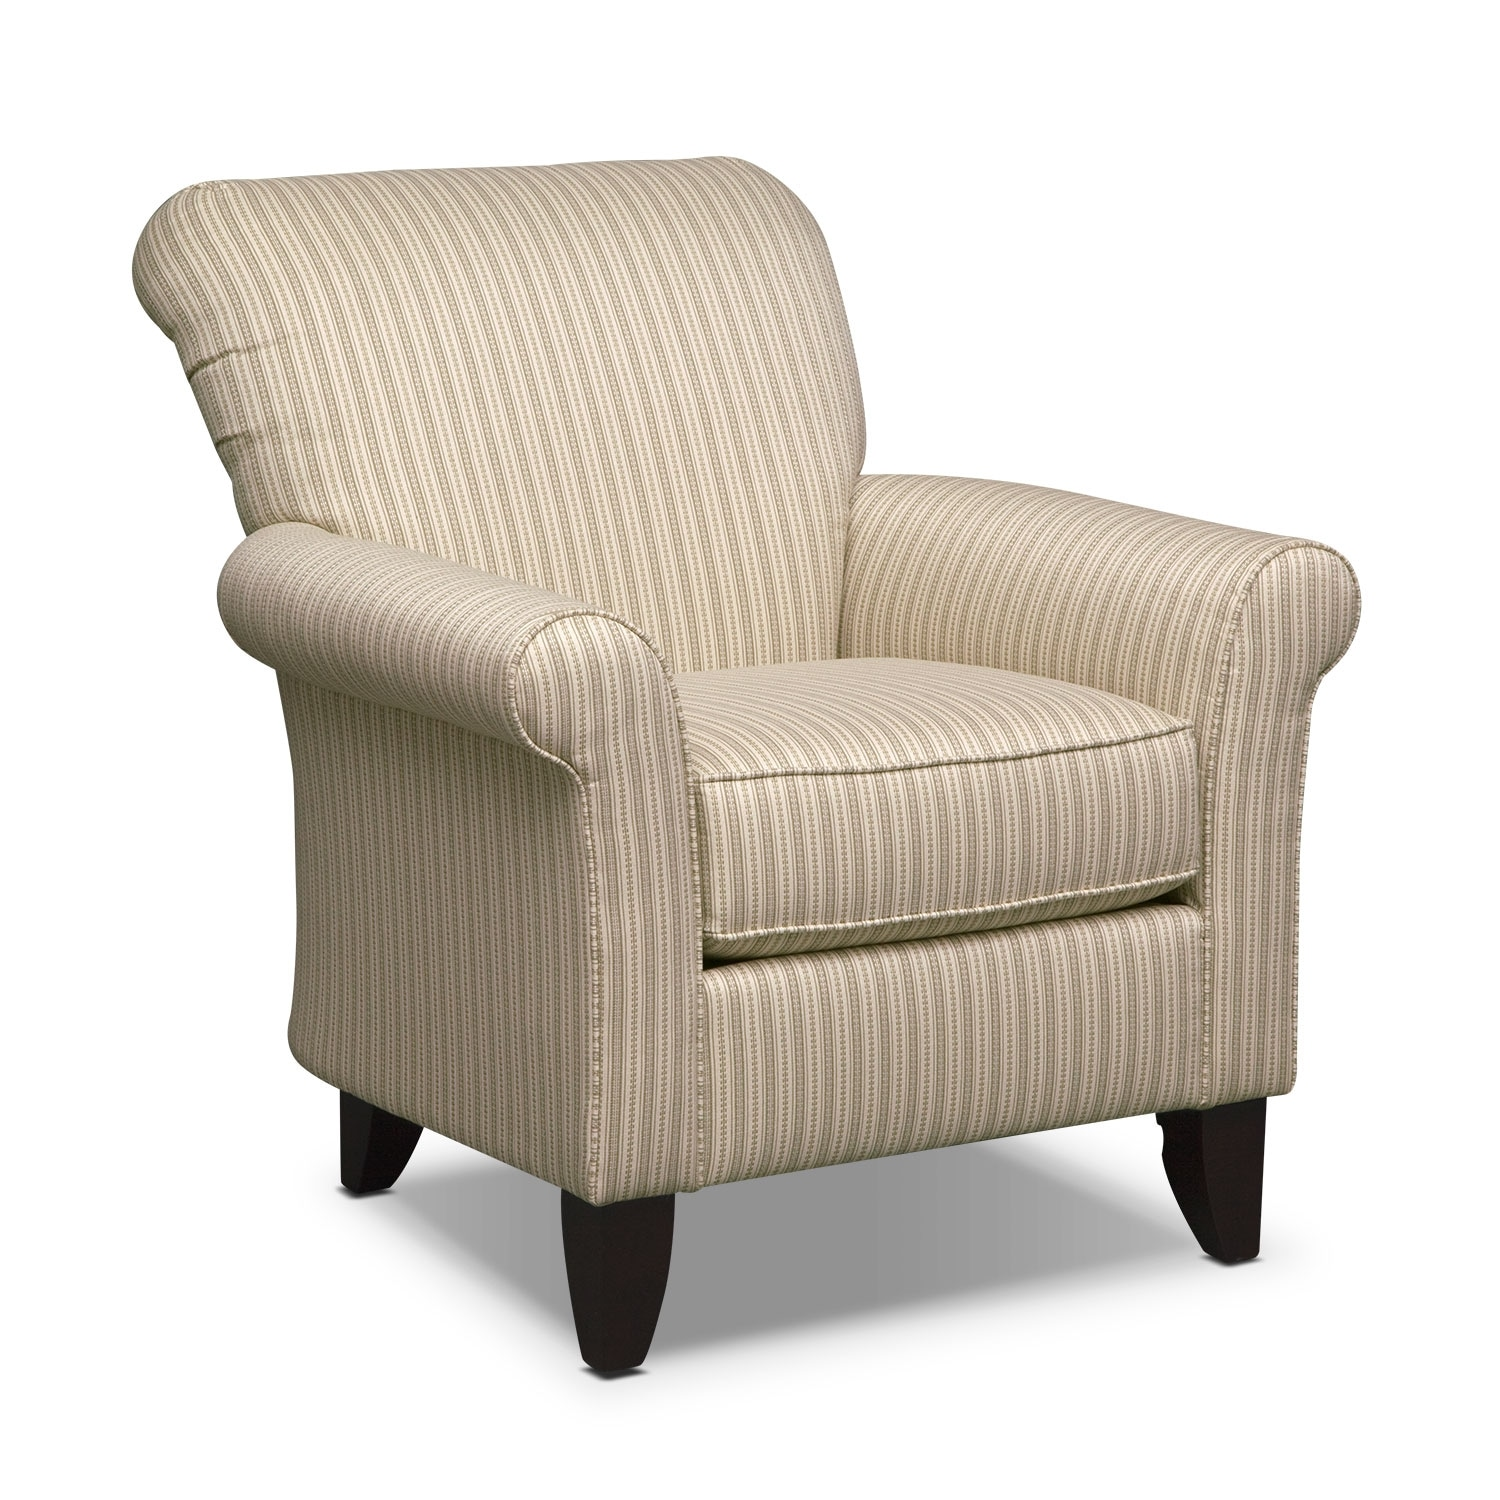 Living room furniture harlow khaki accent chair for Accent furniture